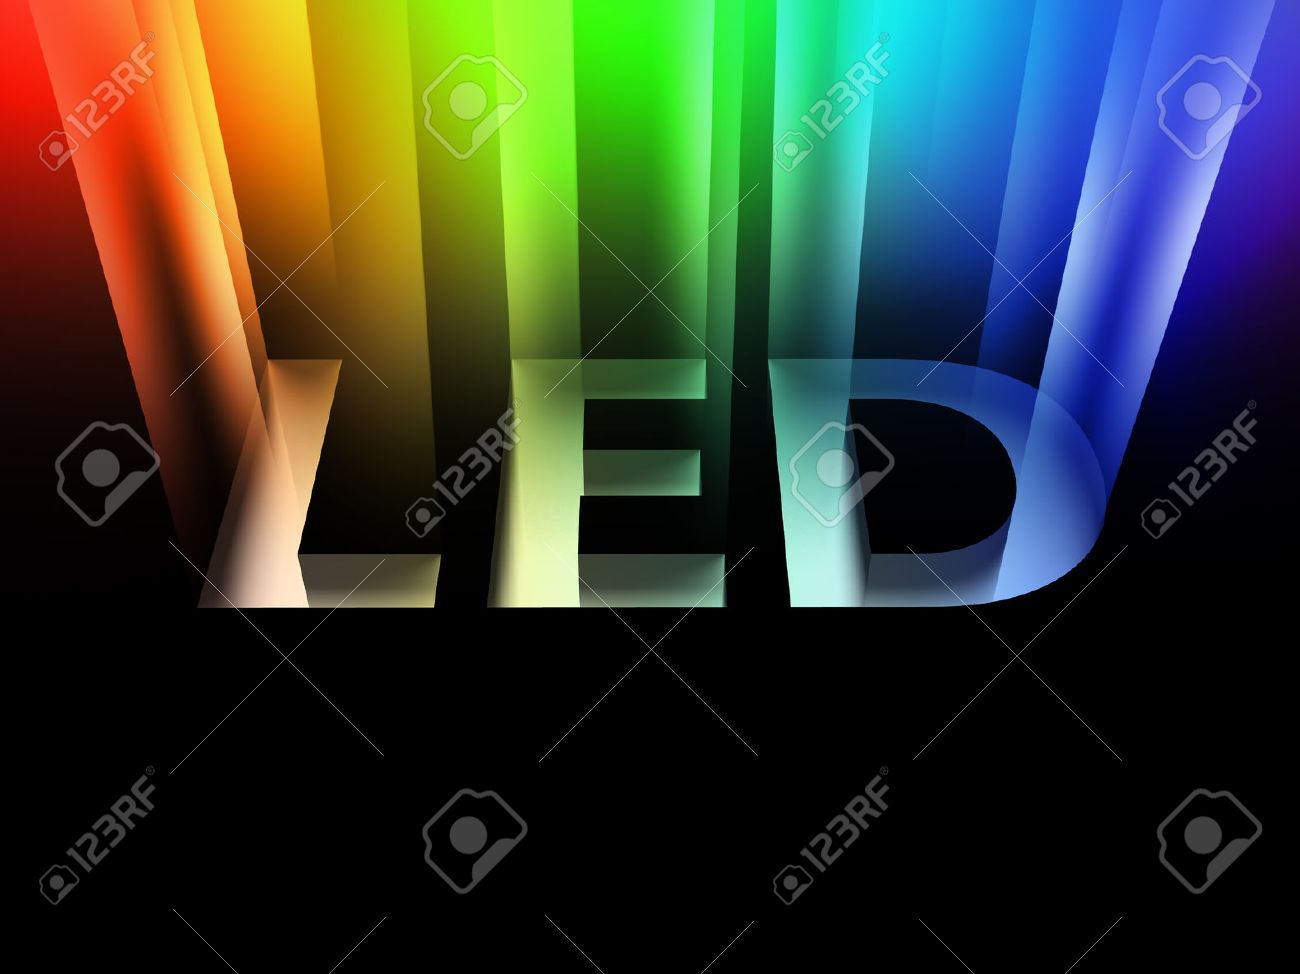 11,553 Led Light Stock Vector Illustration And Royalty Free Led.